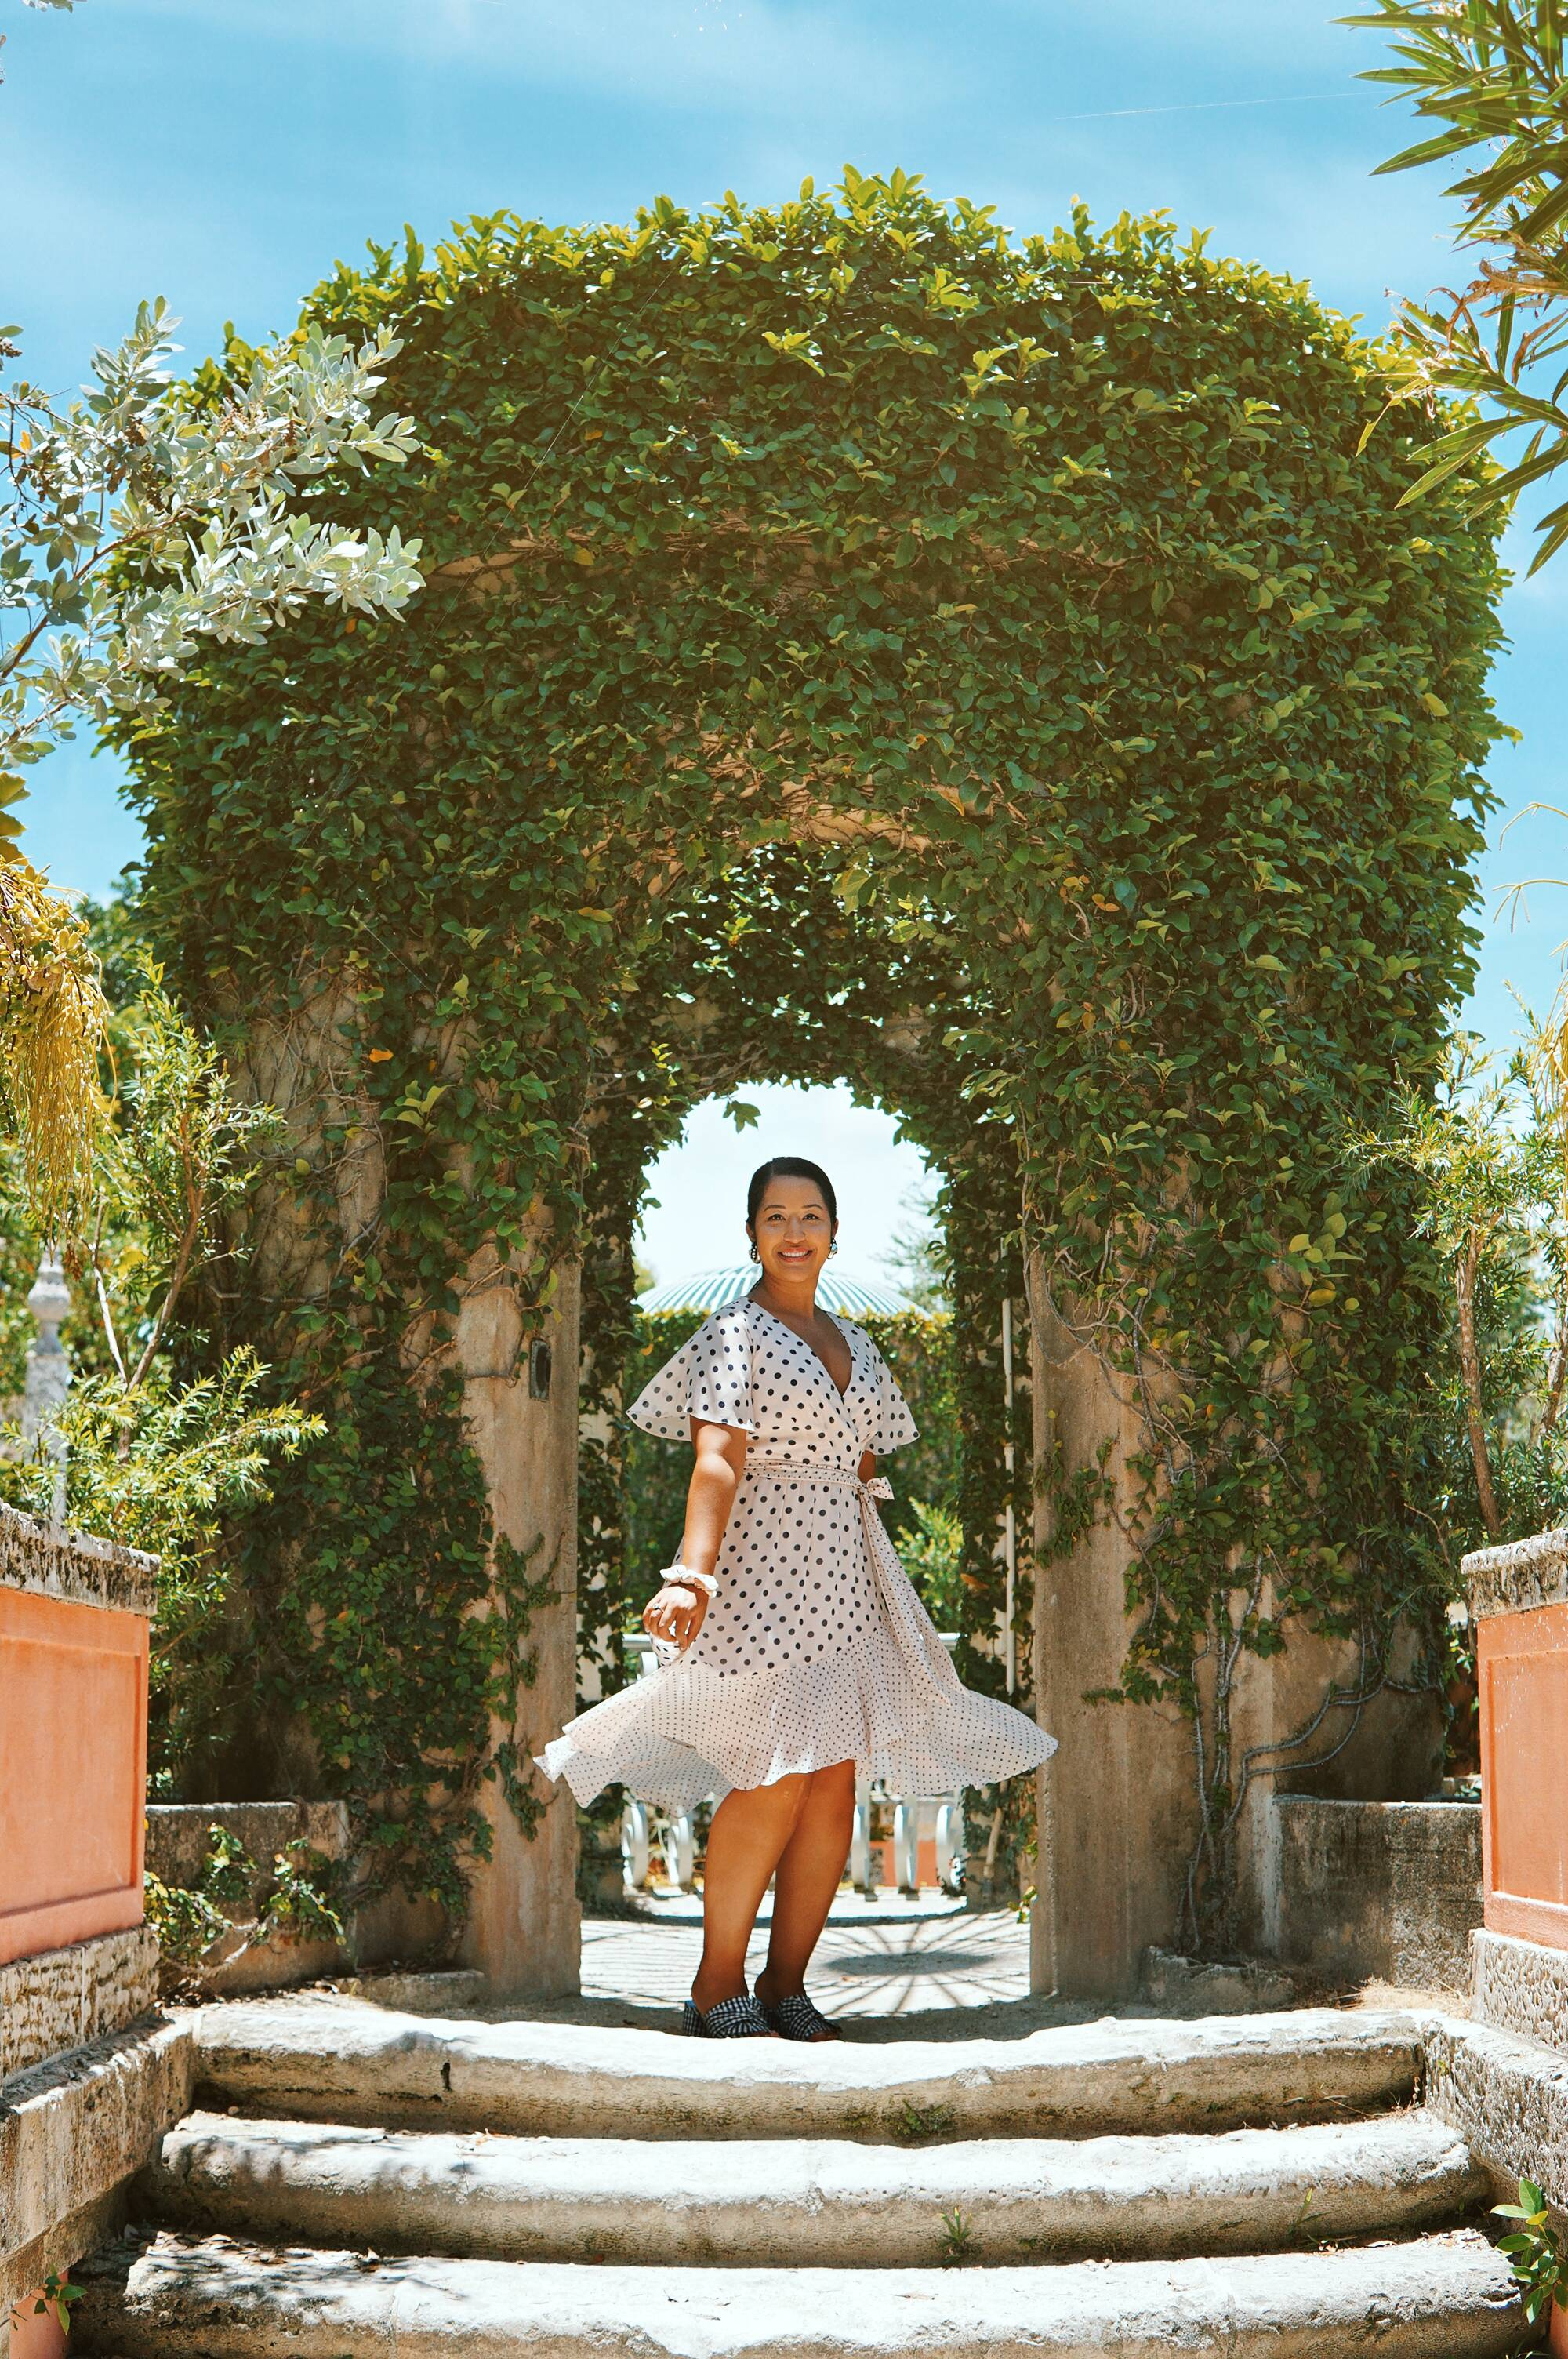 Polka Dot Chiffon dress at the Vizcaya Museum